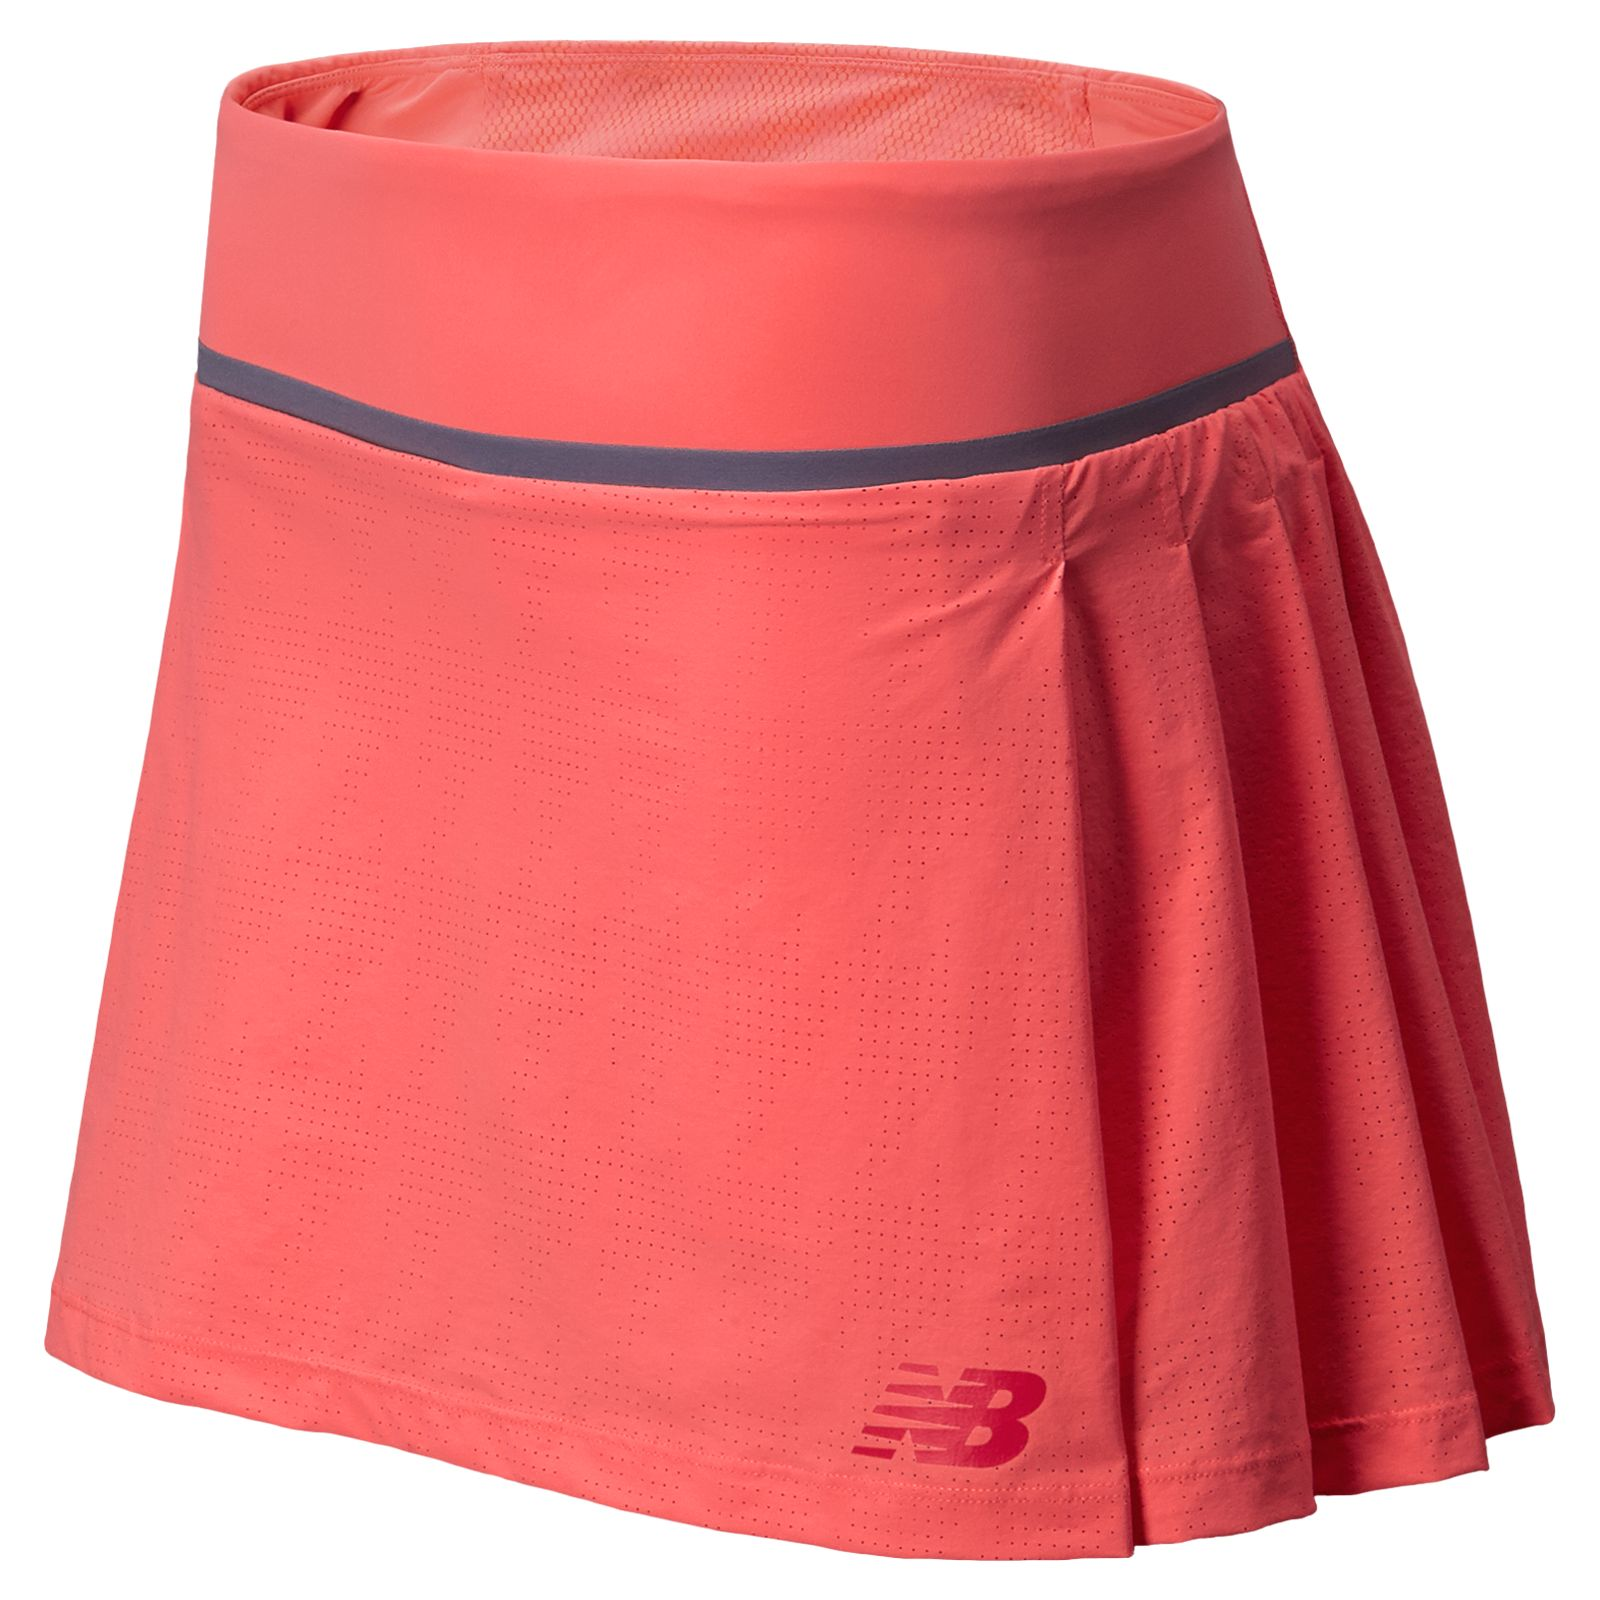 New Balance : Tournament Skort : Women's Apparel : WTK5155FIJ